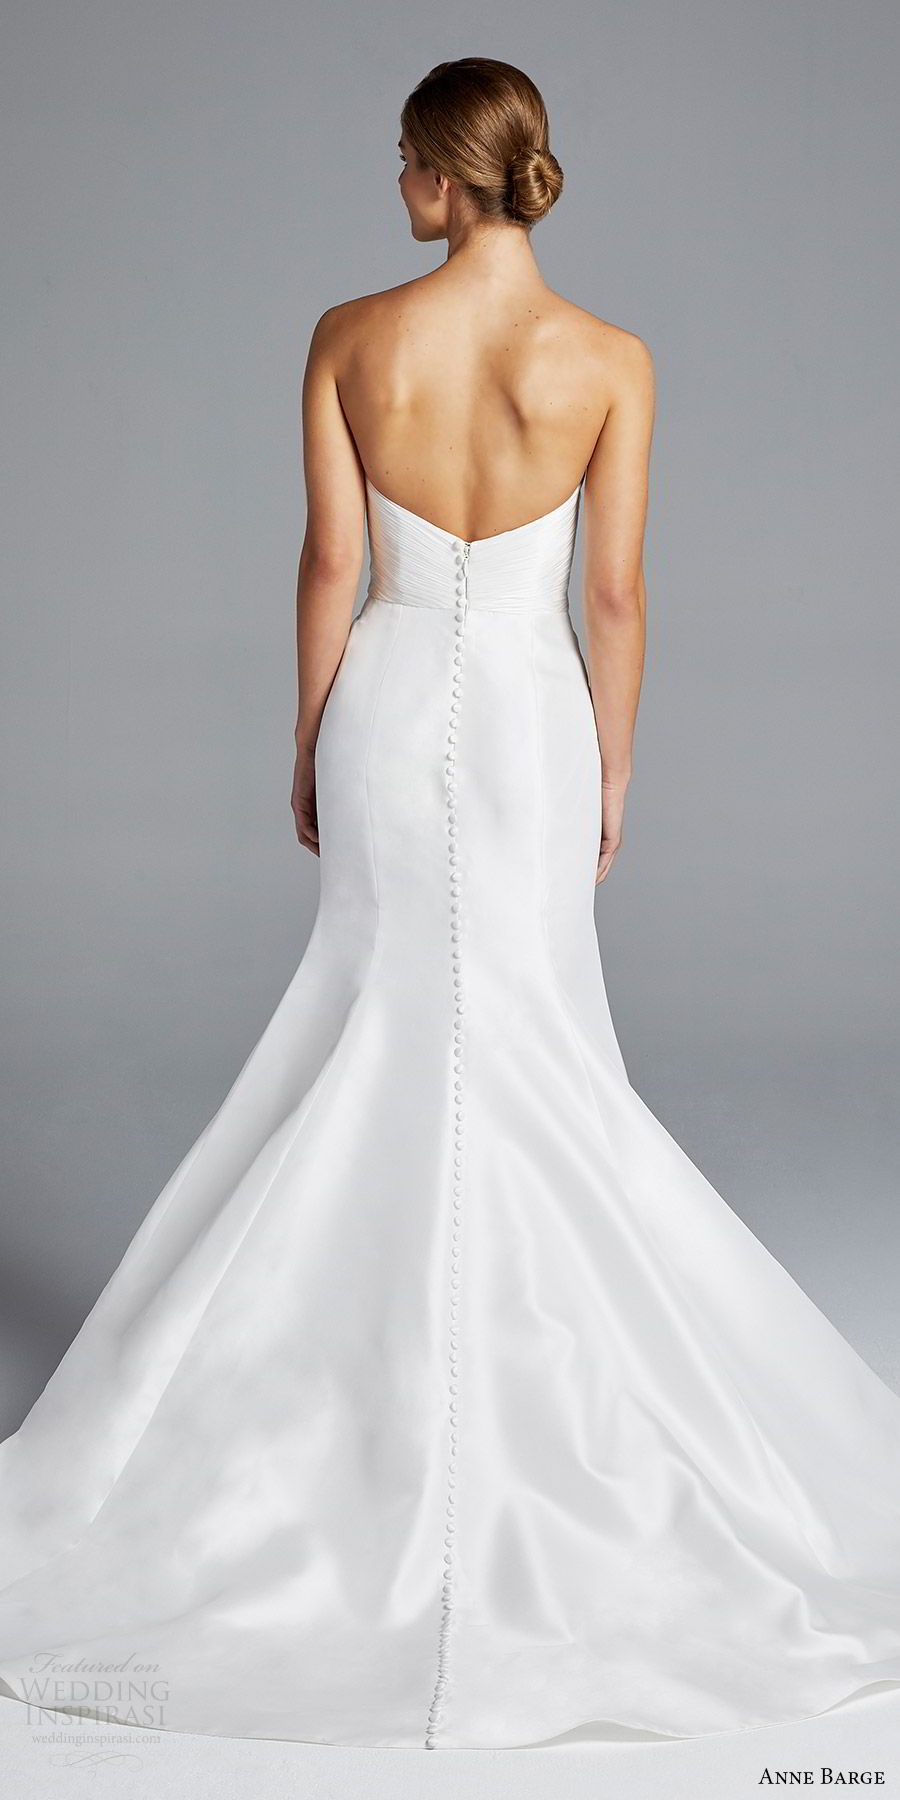 anne barge bridal spring 2019 strapless sweetheart ruched bodice mermaid wedding dress (amal) bv romantic elegant